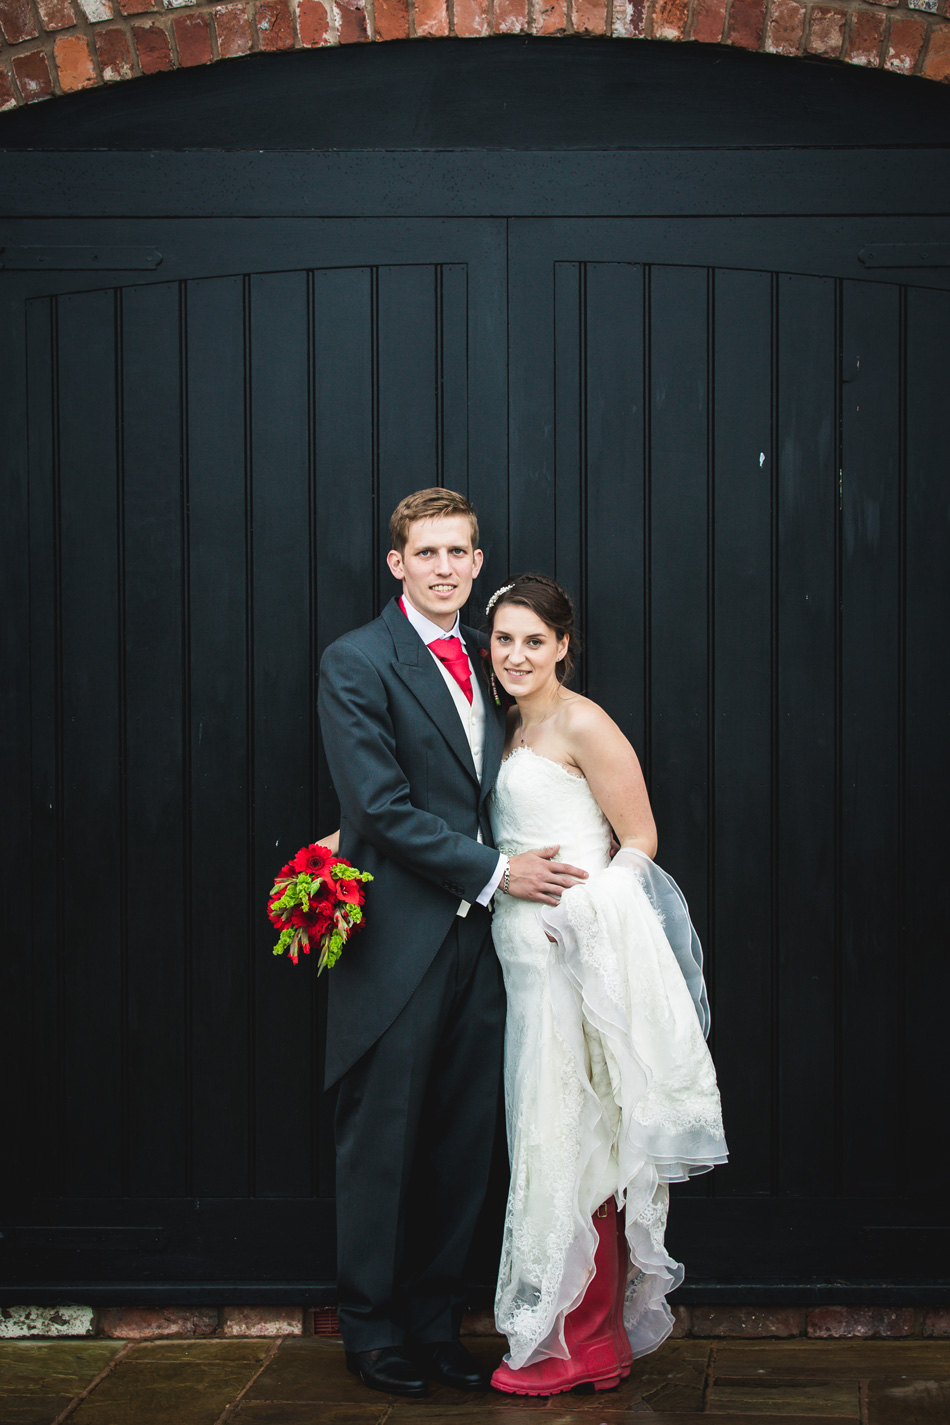 Quirky red wedding at Curradine Barns © Olivia Photography - Red Wellies